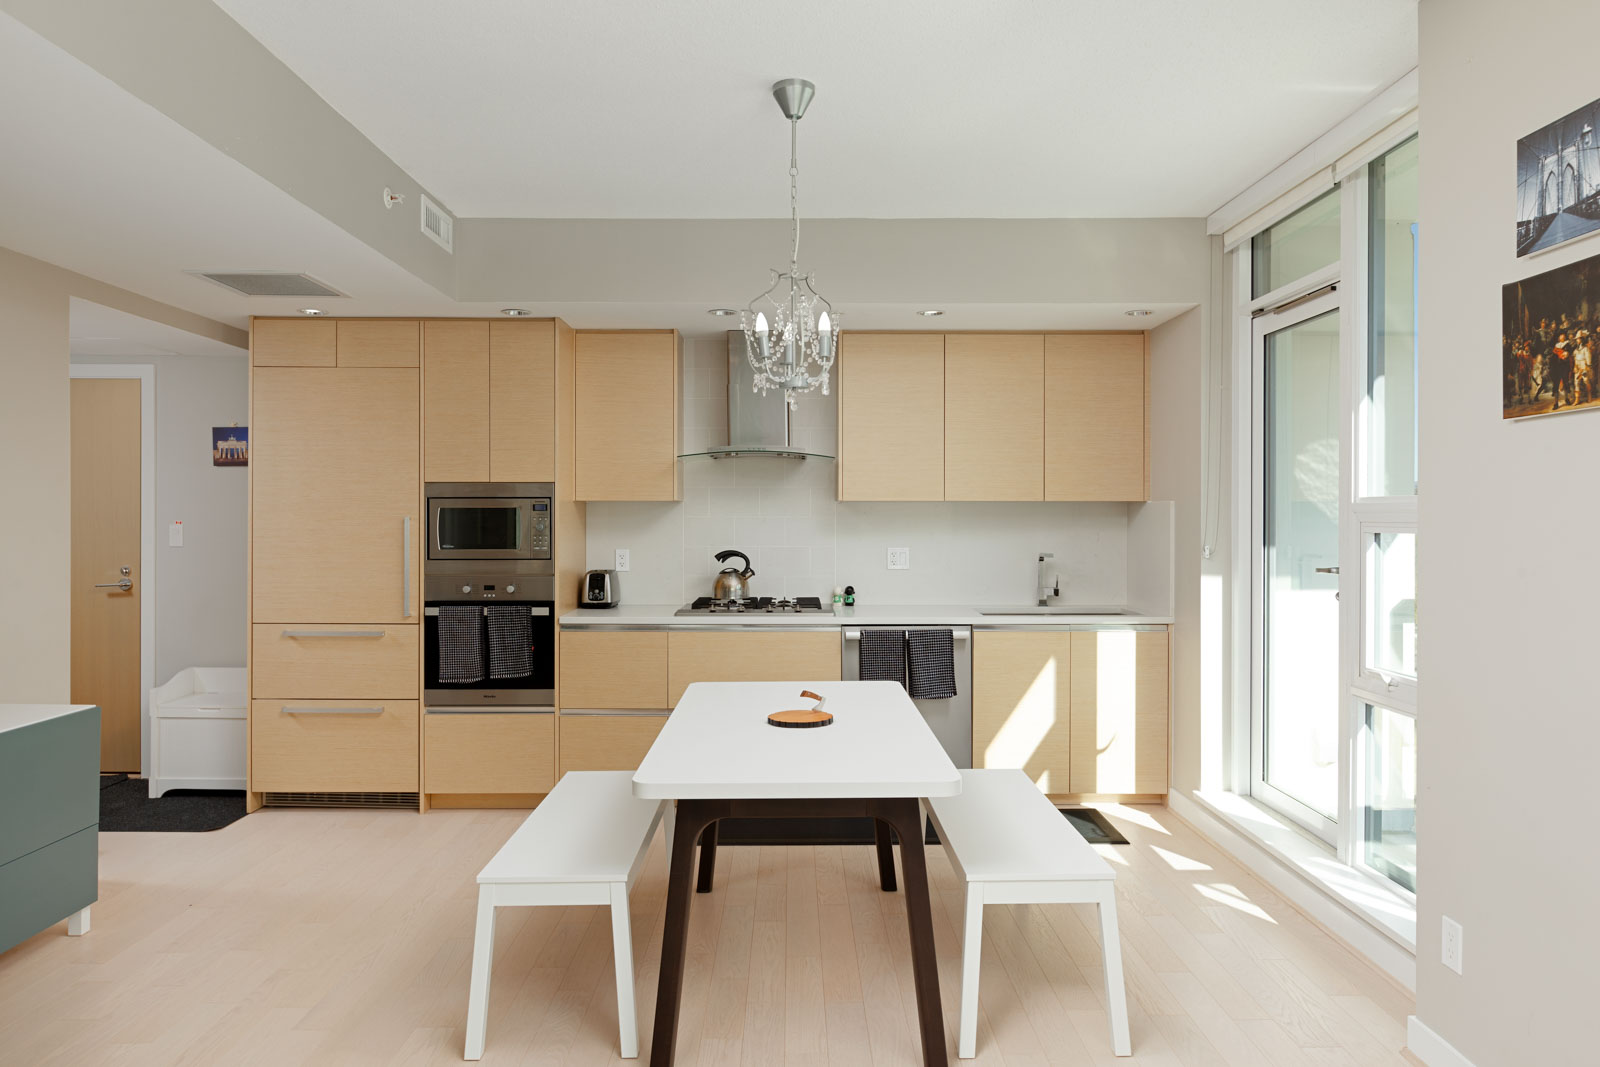 Kitchen with stainless steel appliances in Vancouver condo rental.